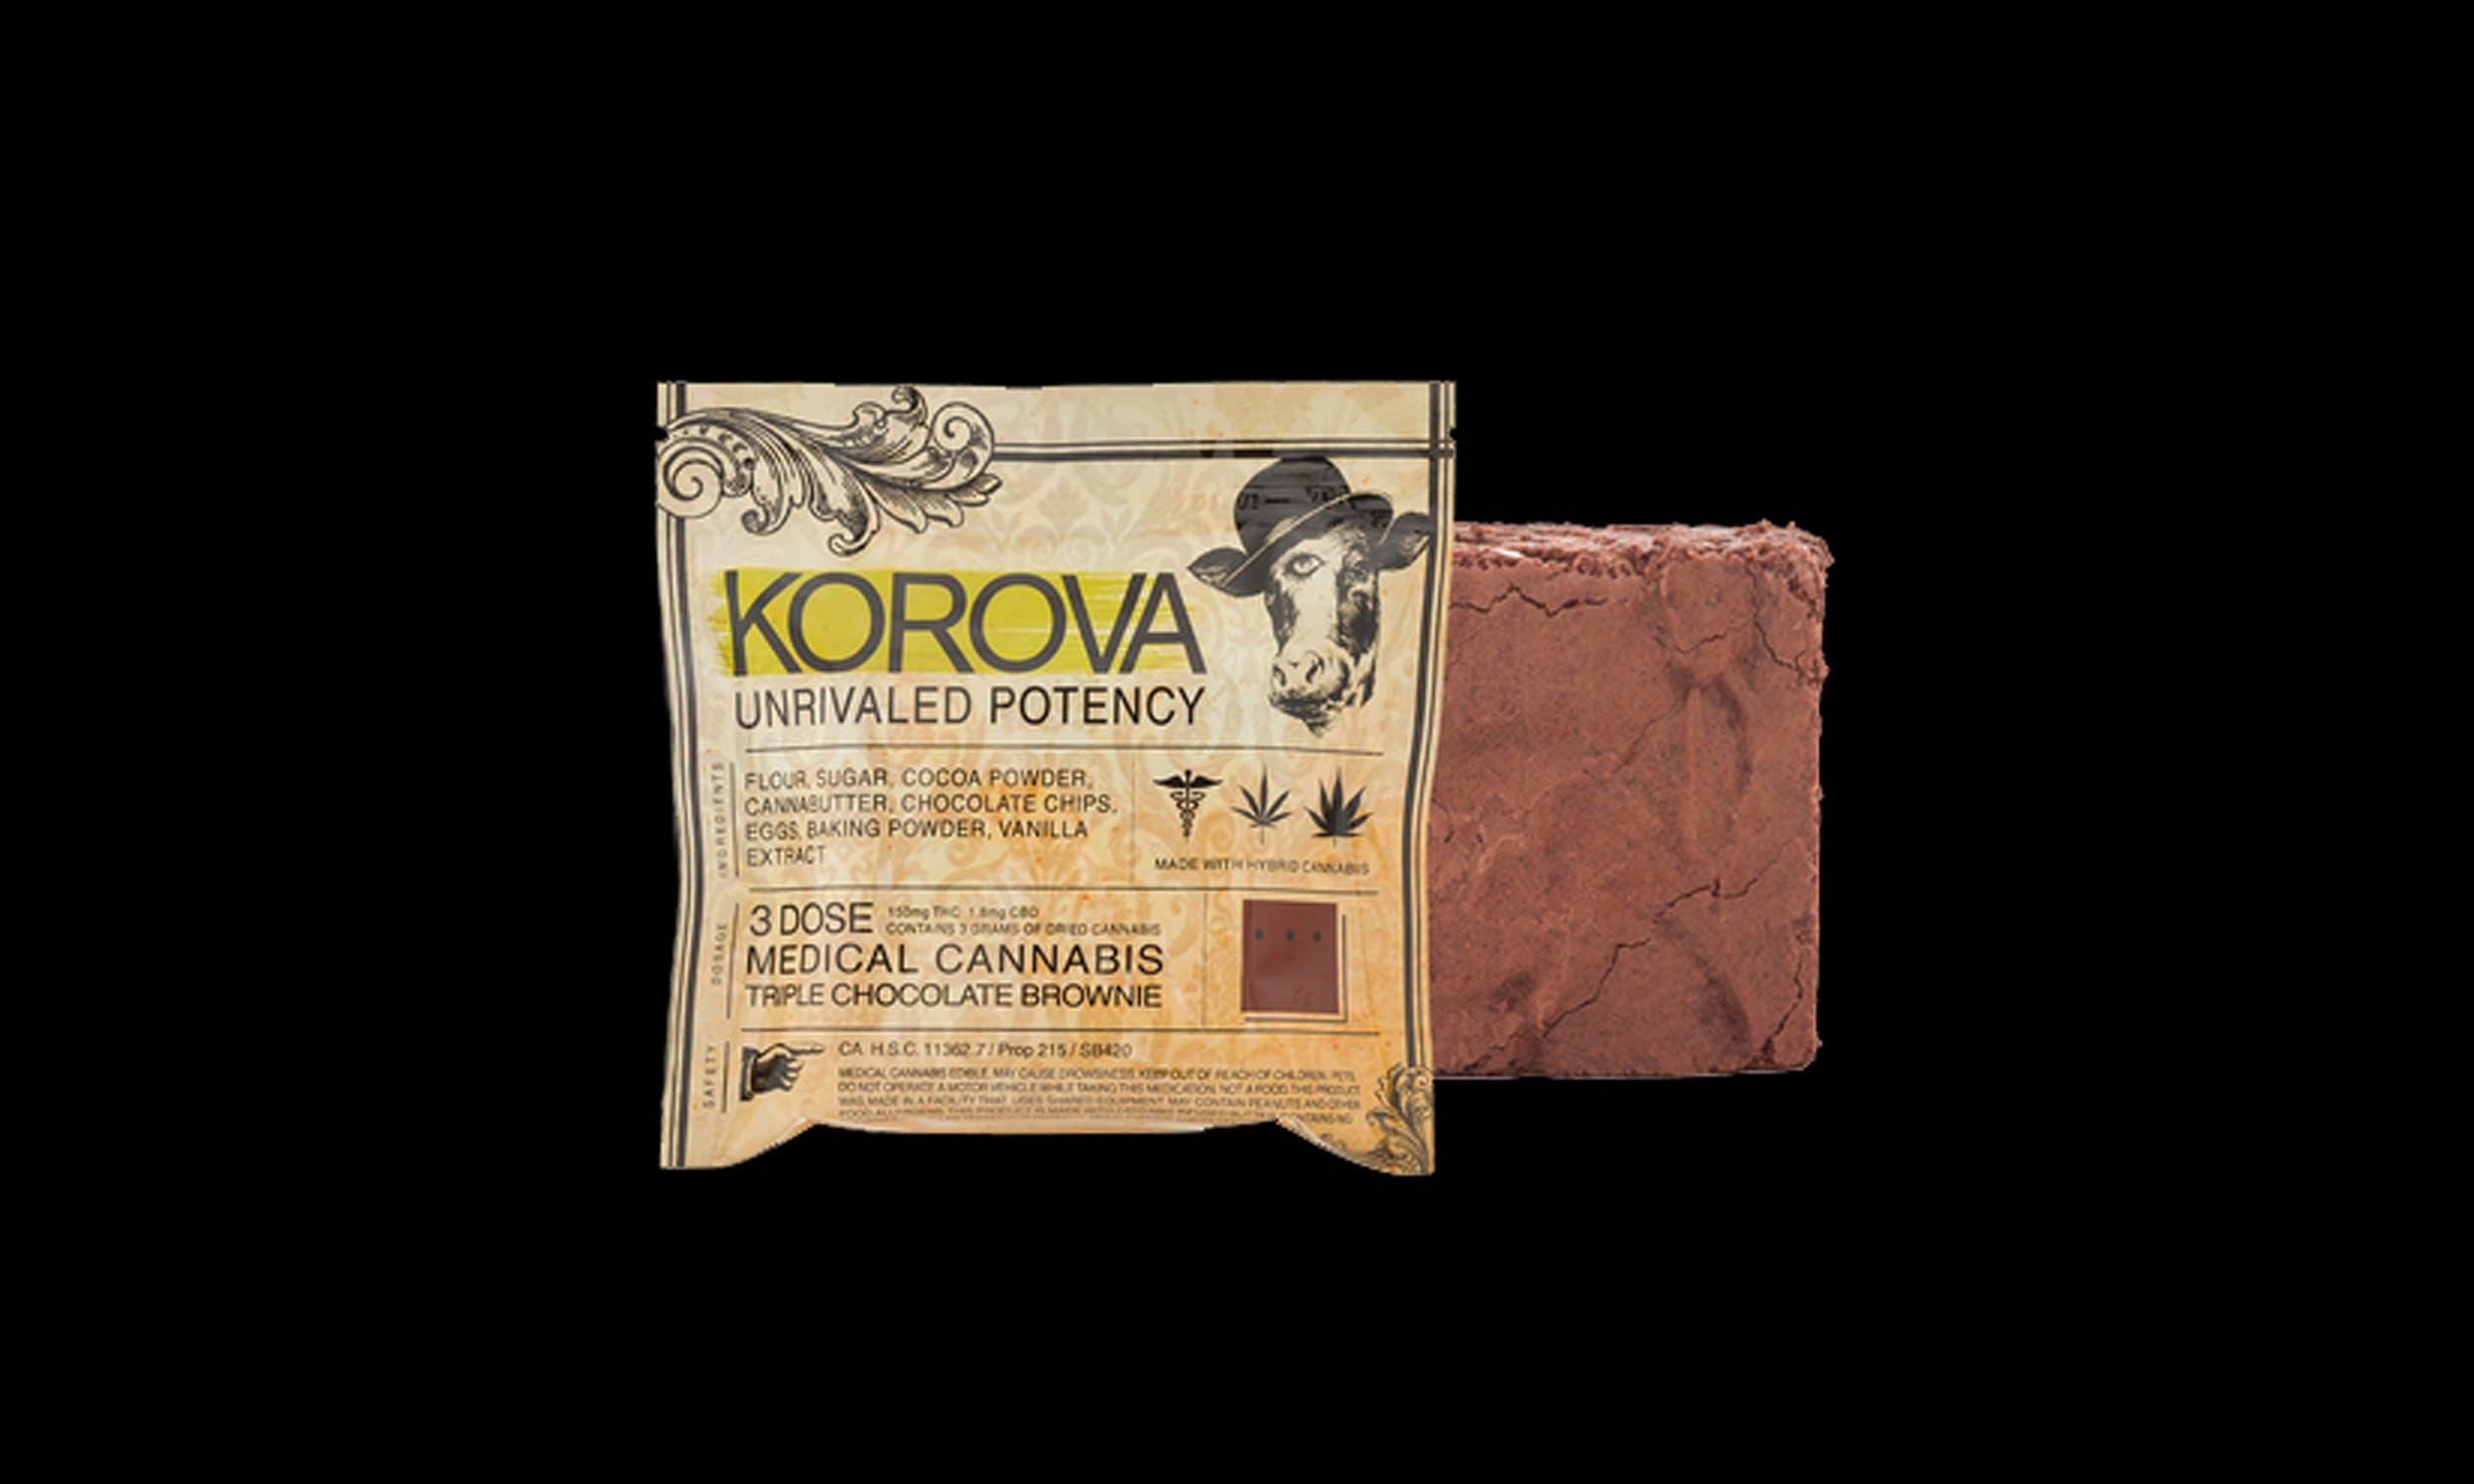 Best Weed Brownie Korova These Are The Best Weed Brownies For When You Cant Make Your Own